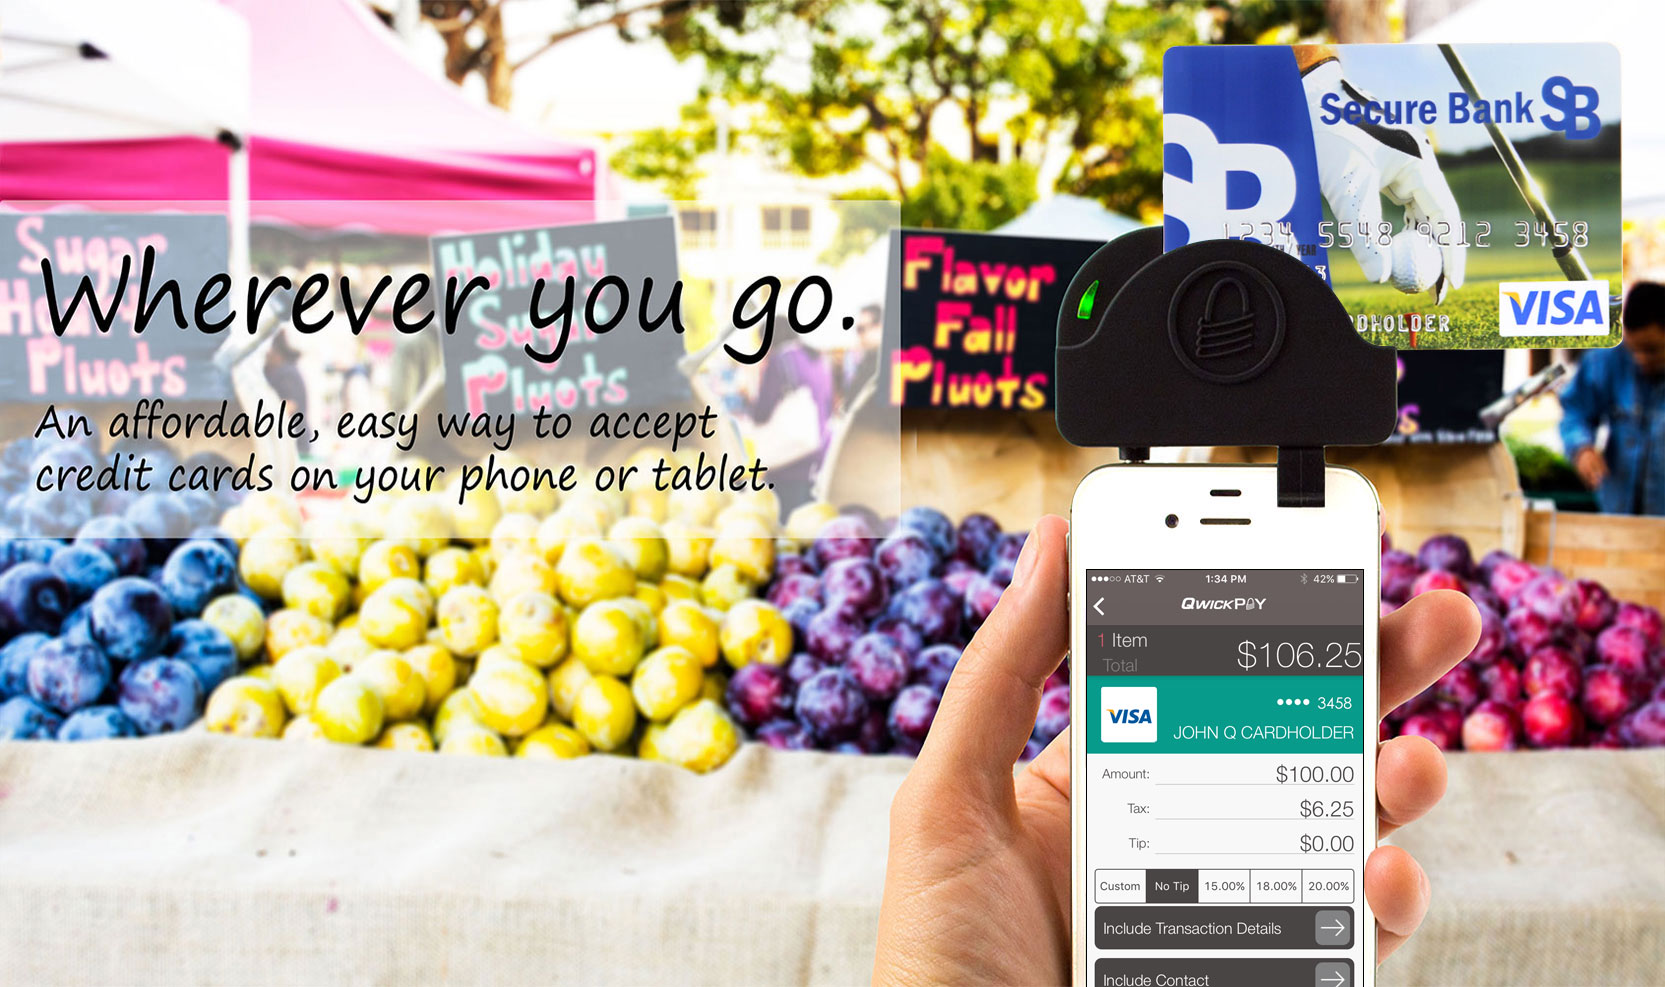 Accept Credit Cards Anywhere with Your Phone or Tablet